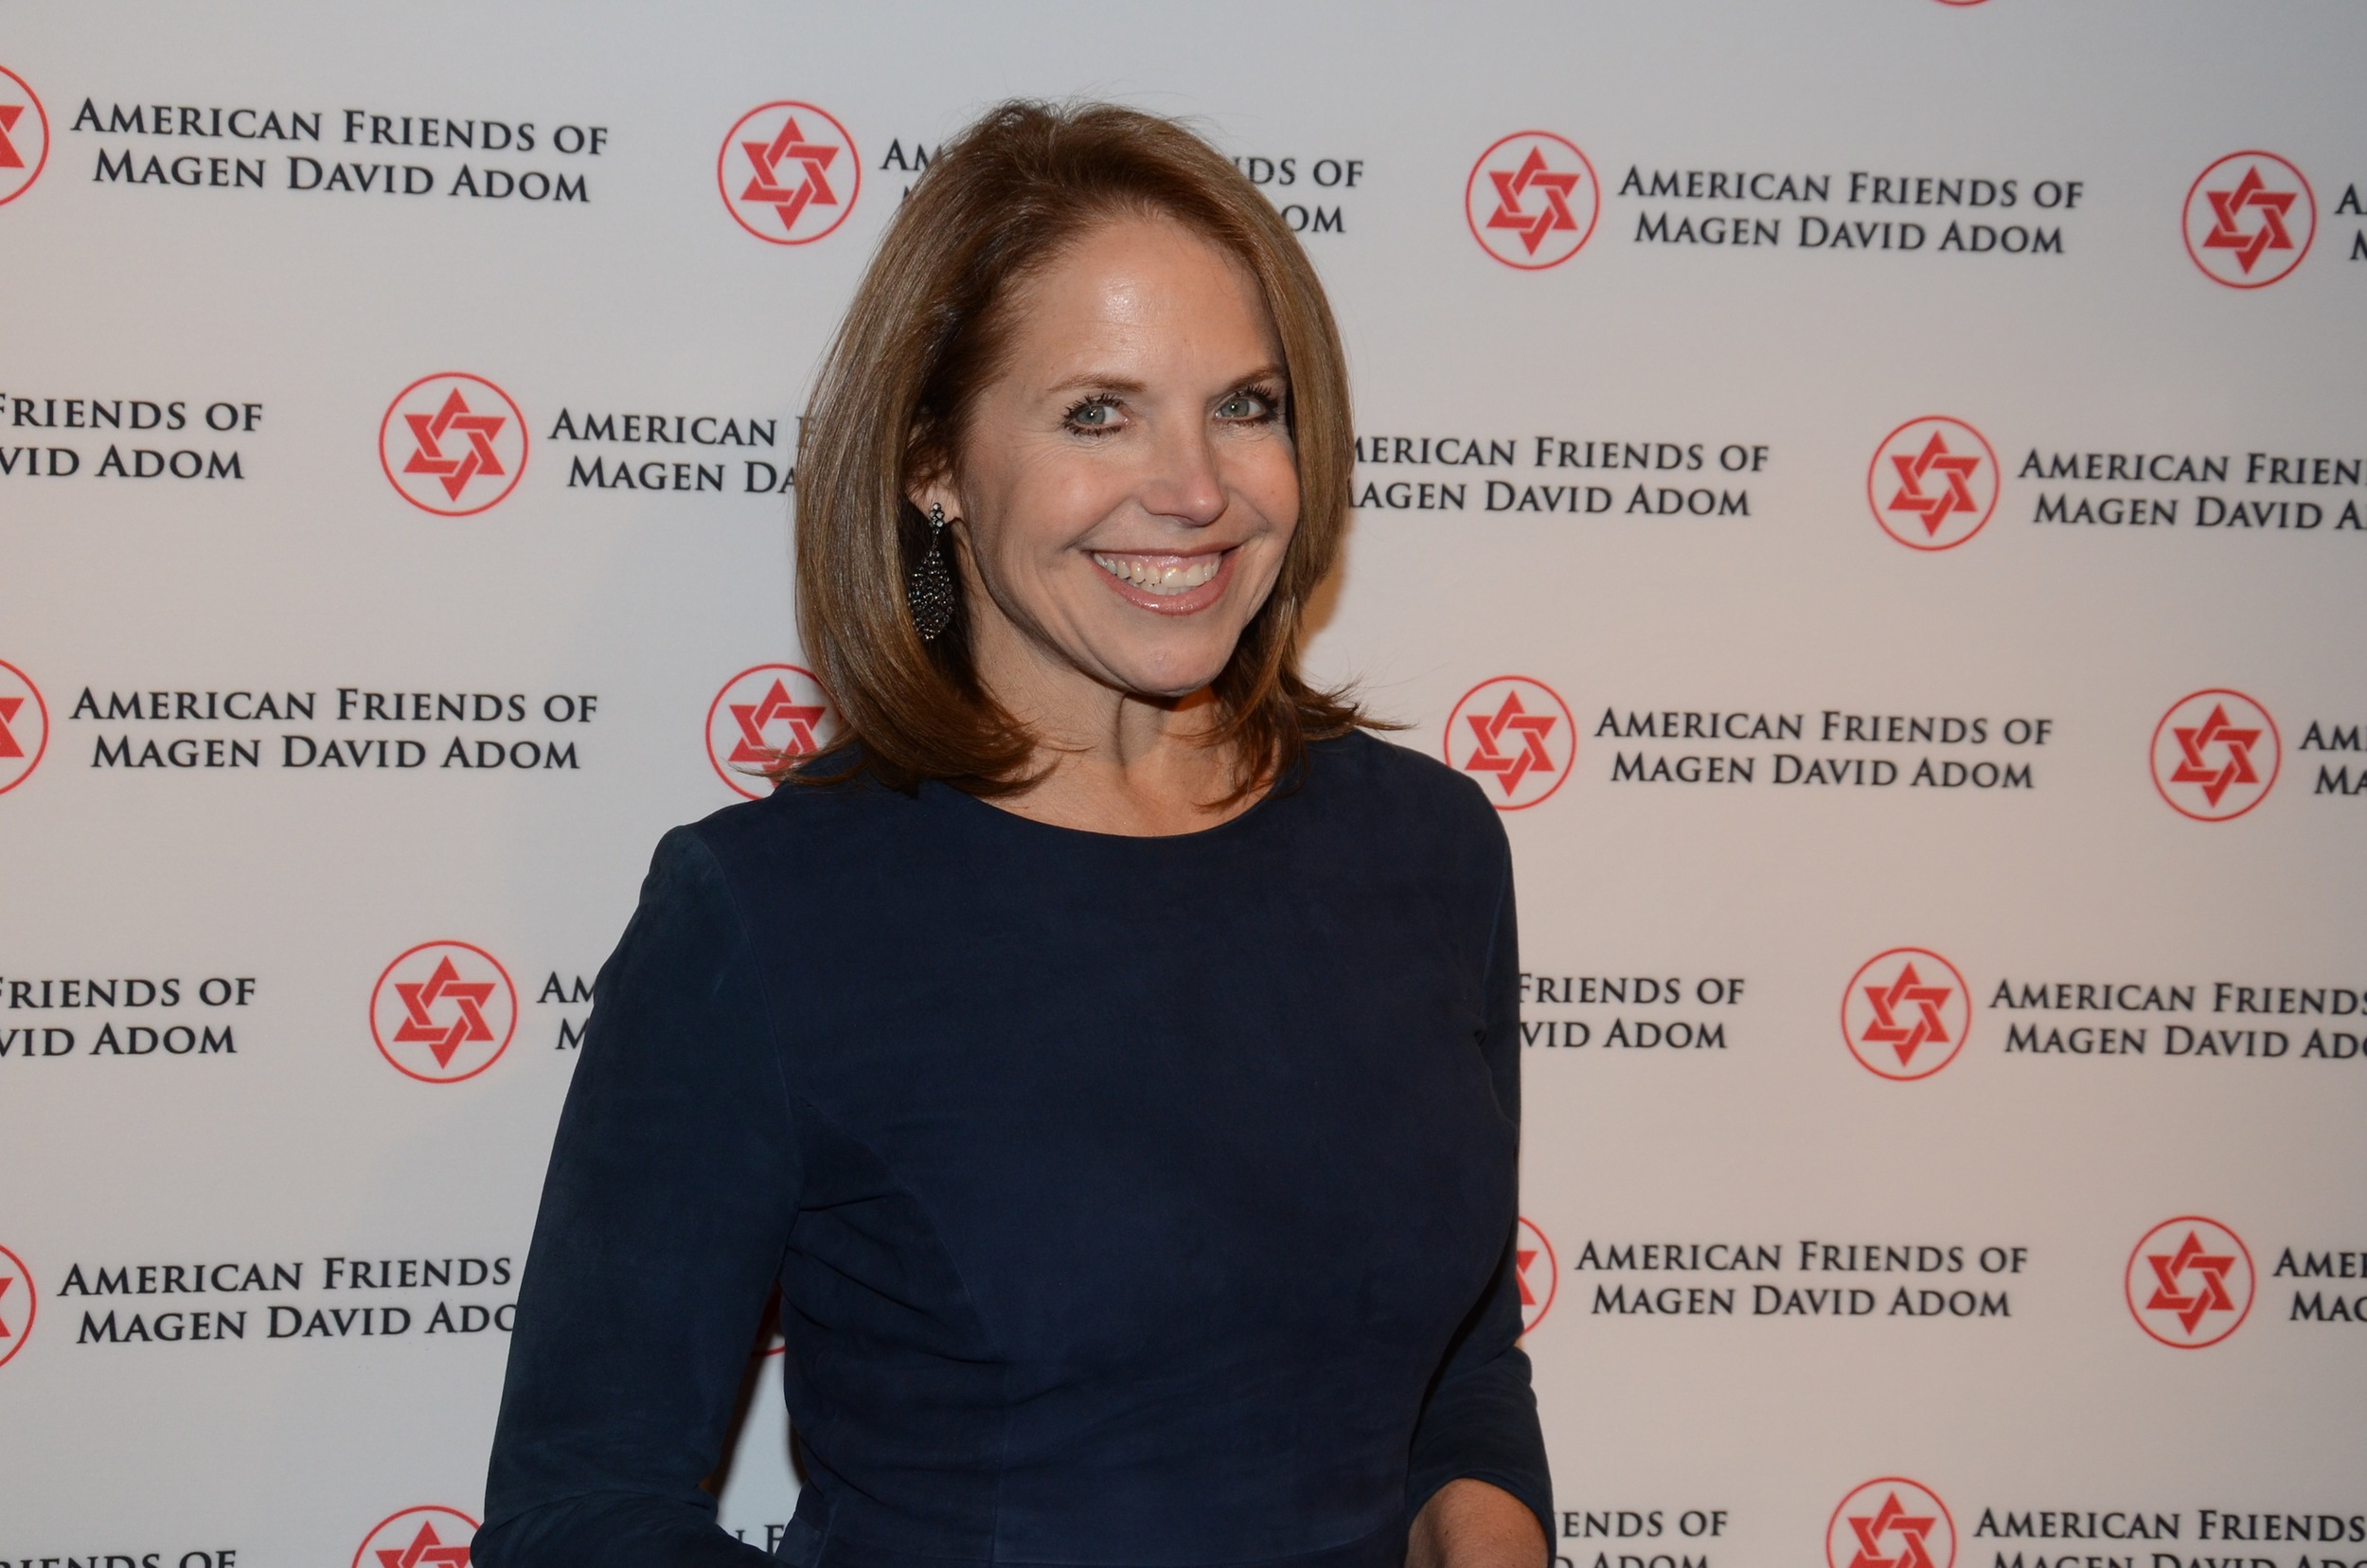 Katie Couric at the Dec. 9 fundraiser for Magen David Adom in New York City. Credit: Howard Wechsler.